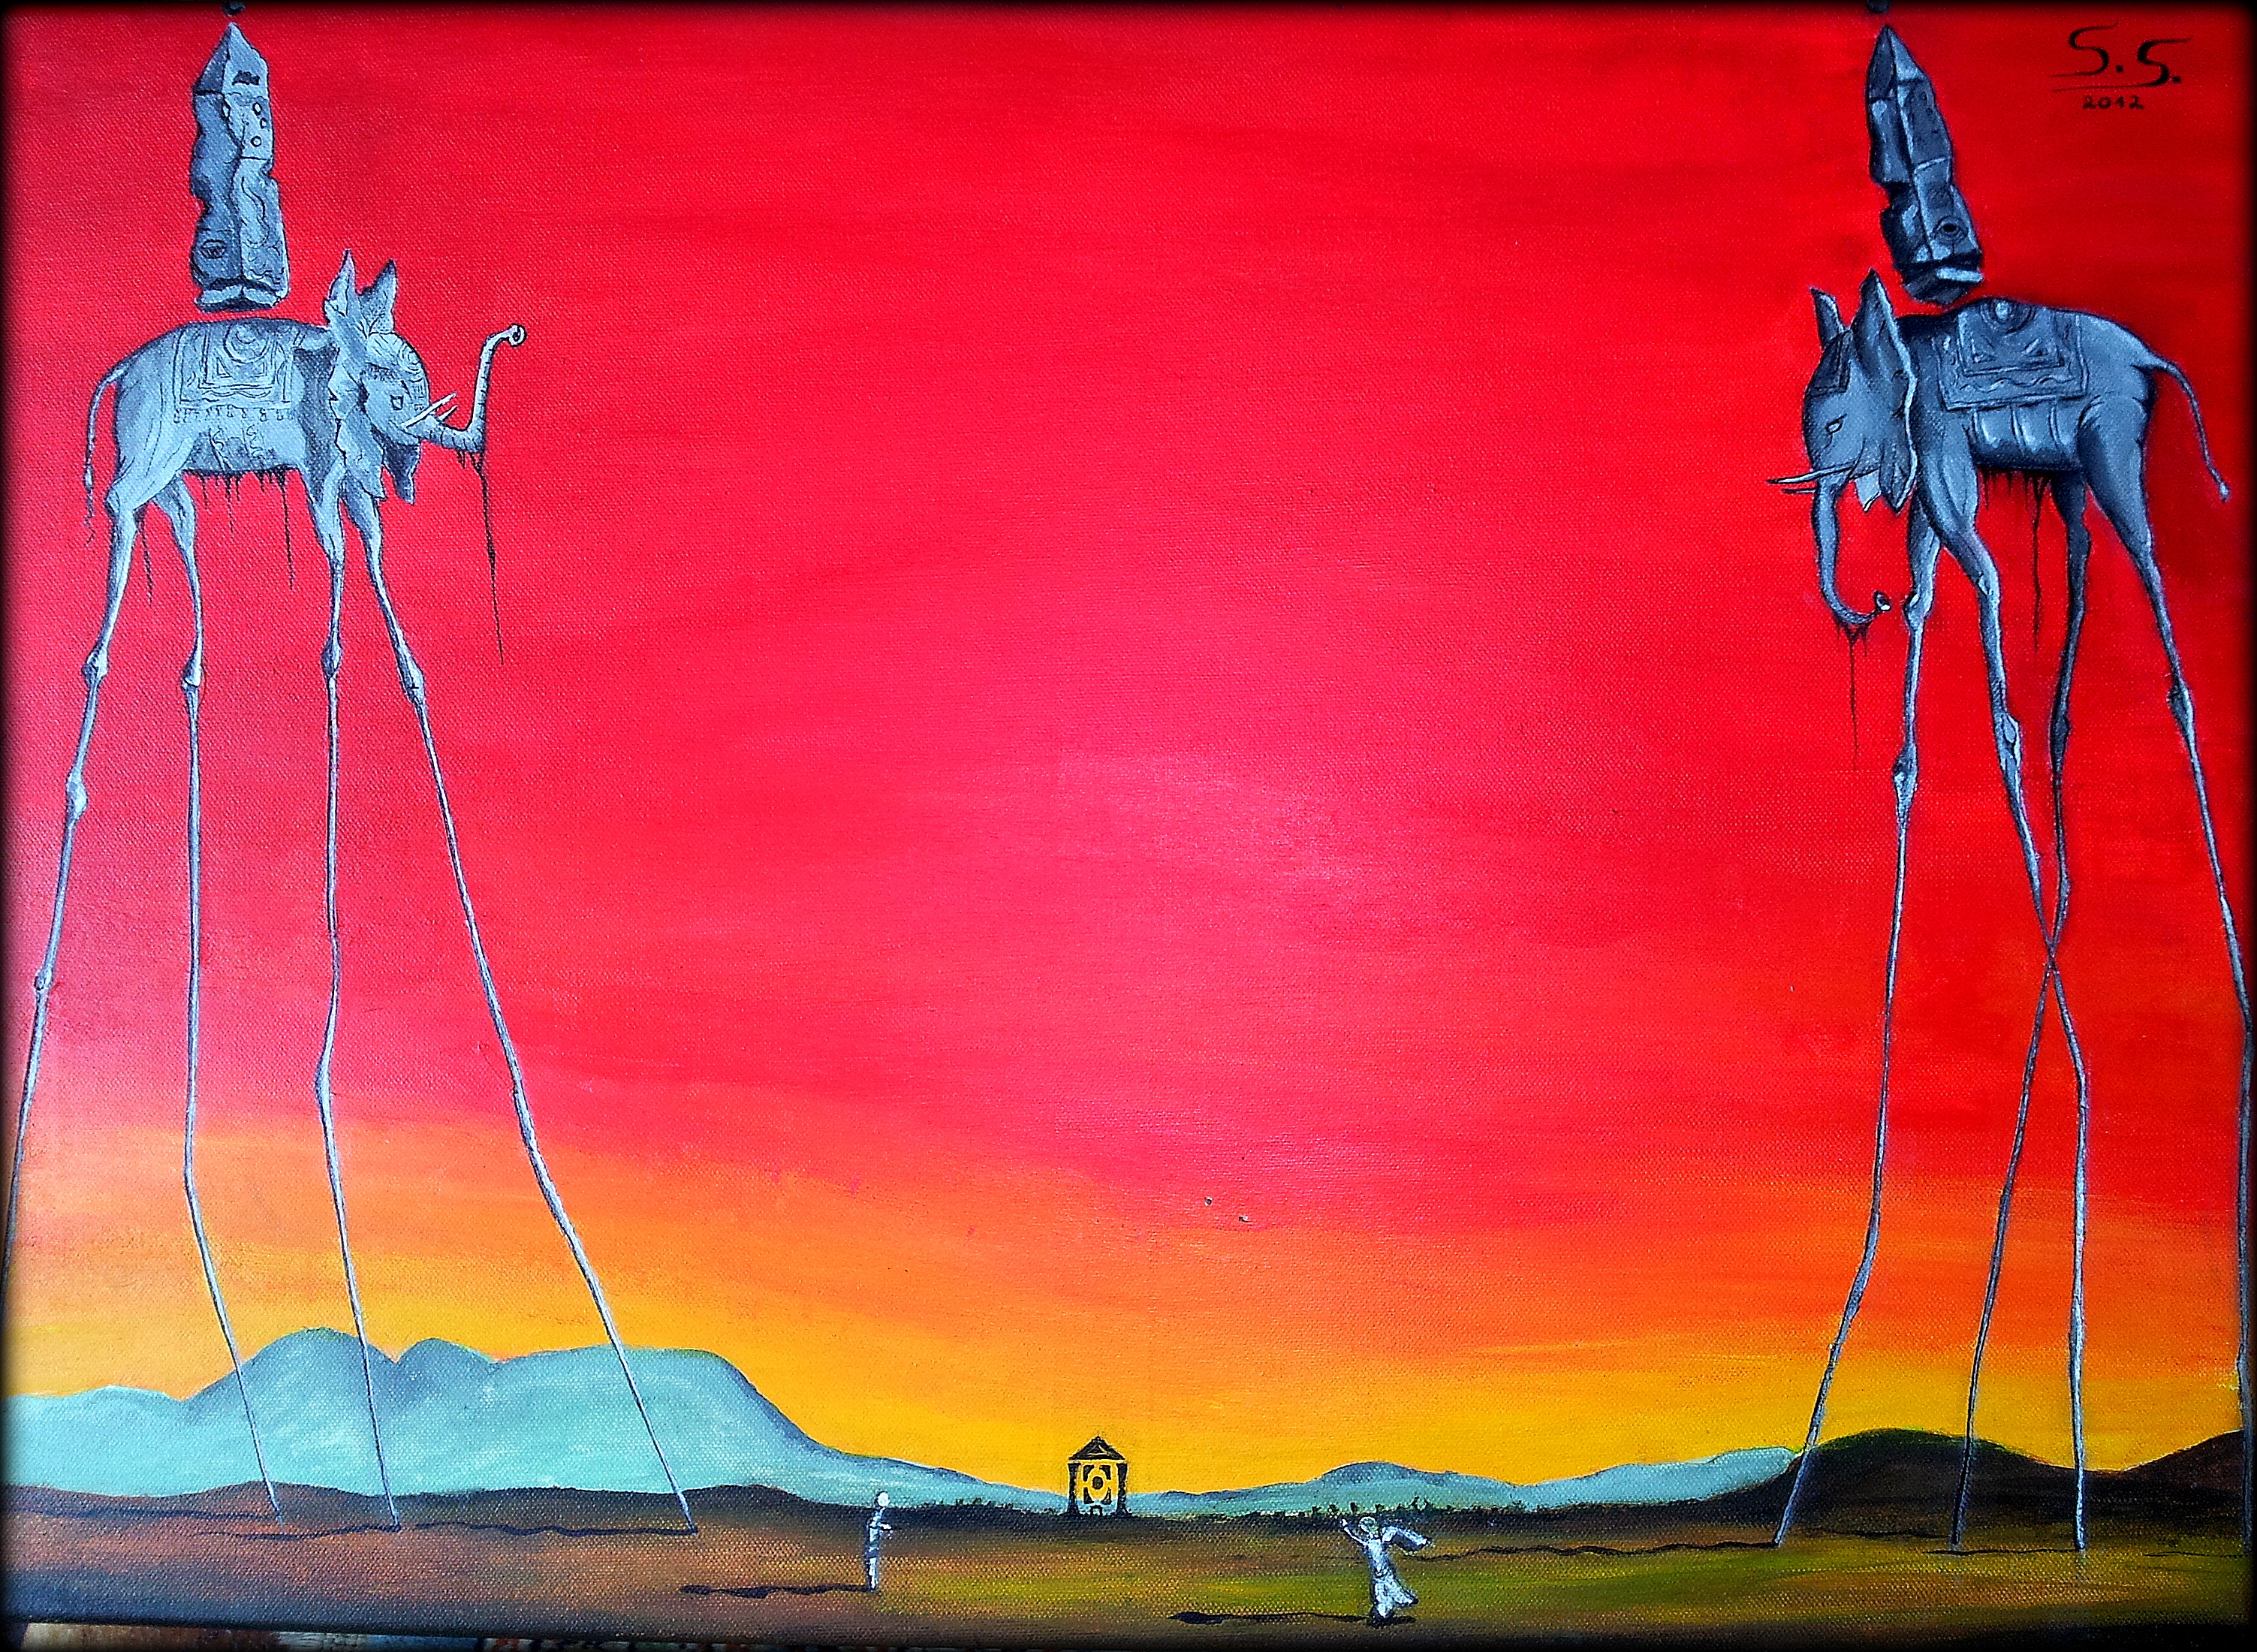 The Elephants by Dali - New Edition by Oil-Bac on DeviantArt